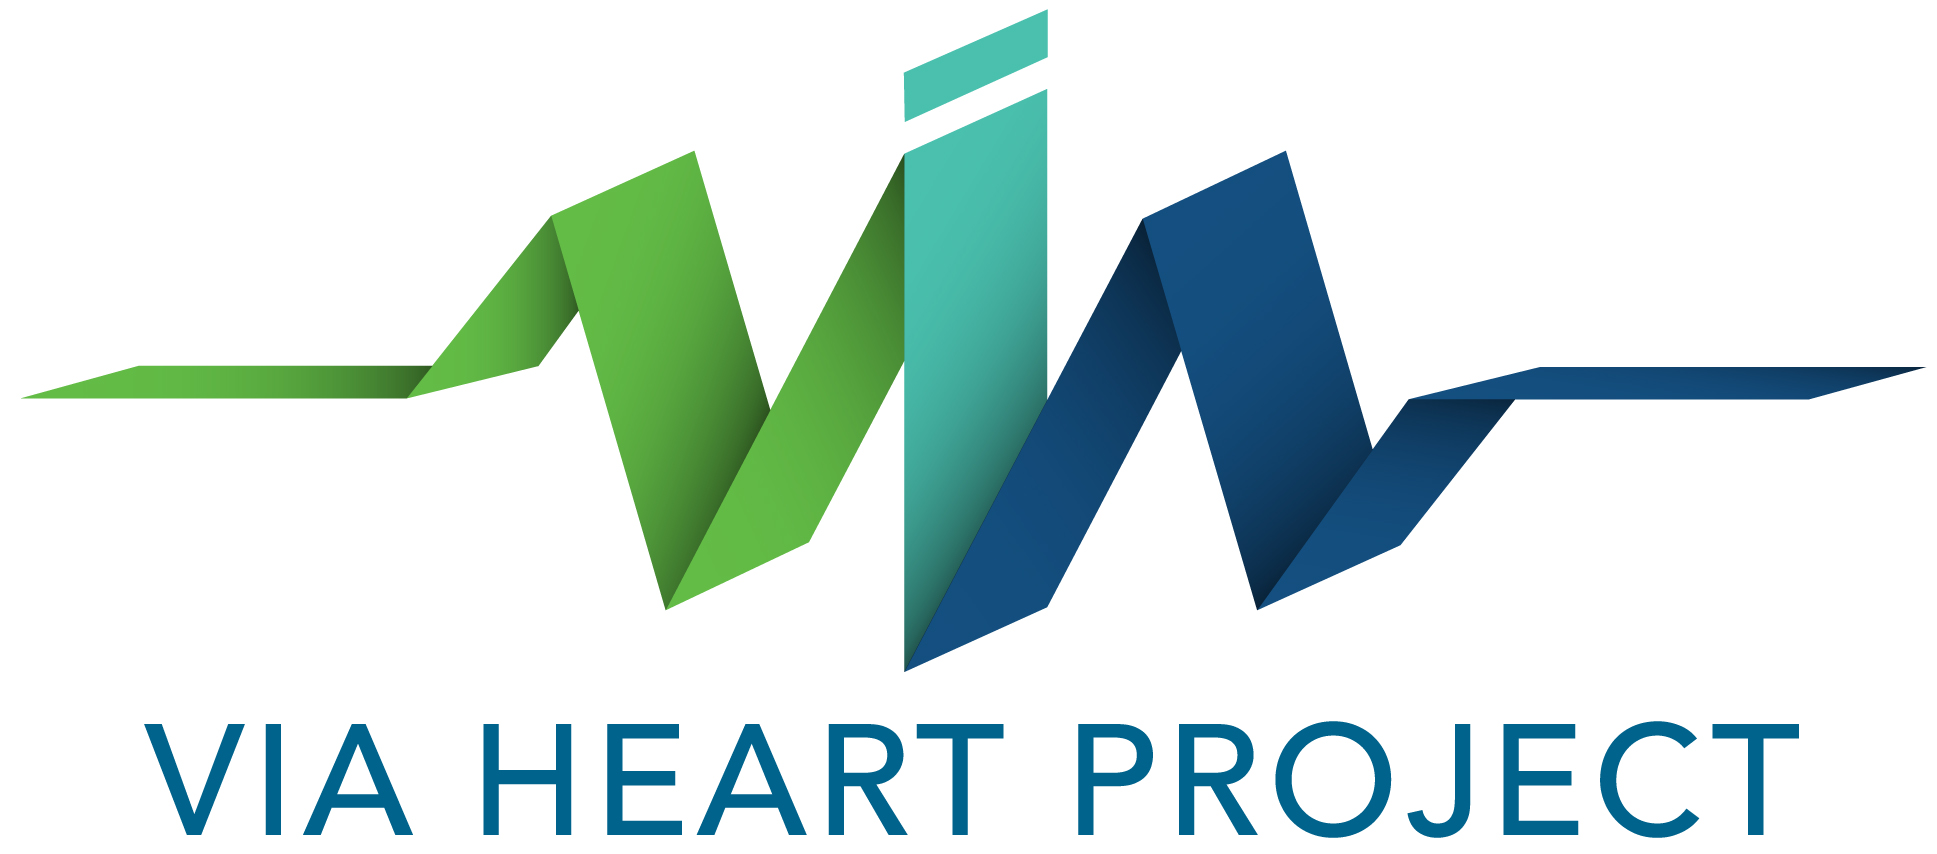 via heart project logo FINAL - Homepage